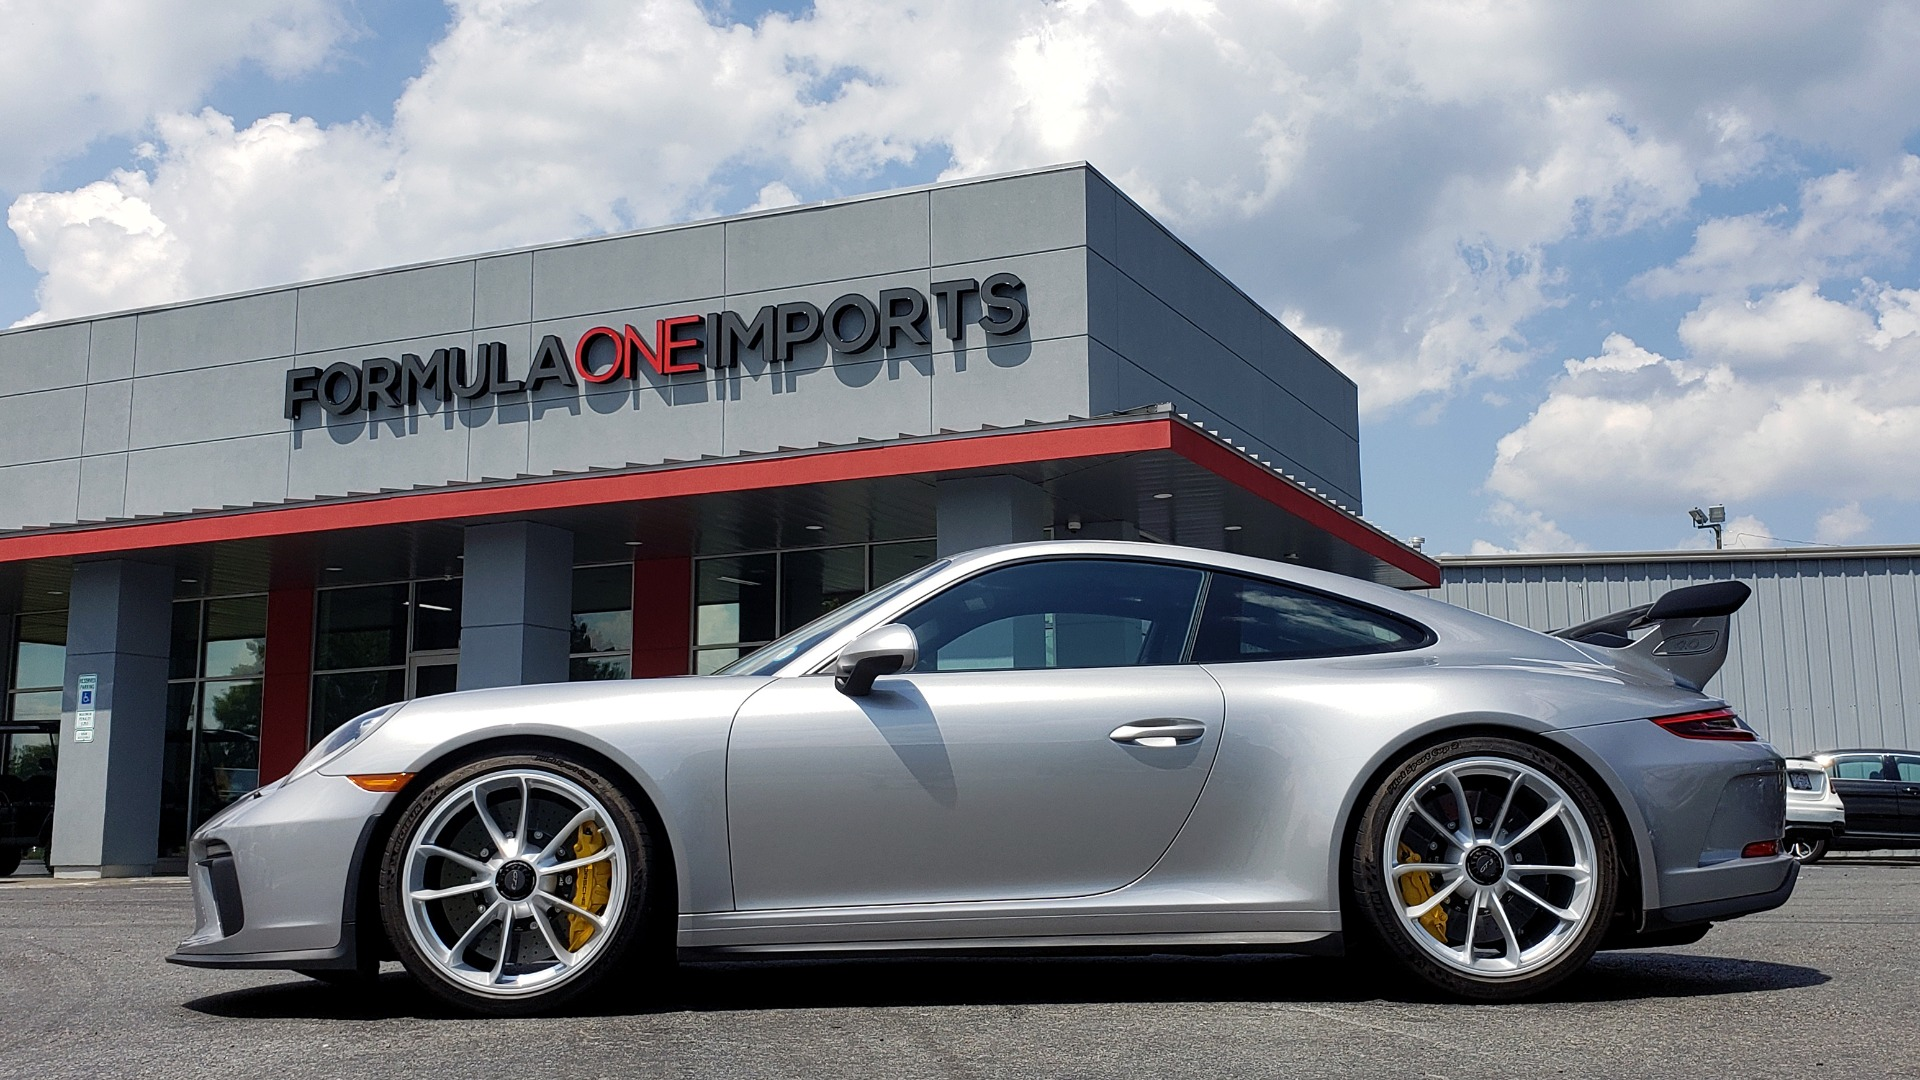 Used 2018 Porsche 911 GT3 4.0L 500HP / 6-SPD MNL / NAV / REARVIEW / PCCB for sale Sold at Formula Imports in Charlotte NC 28227 80